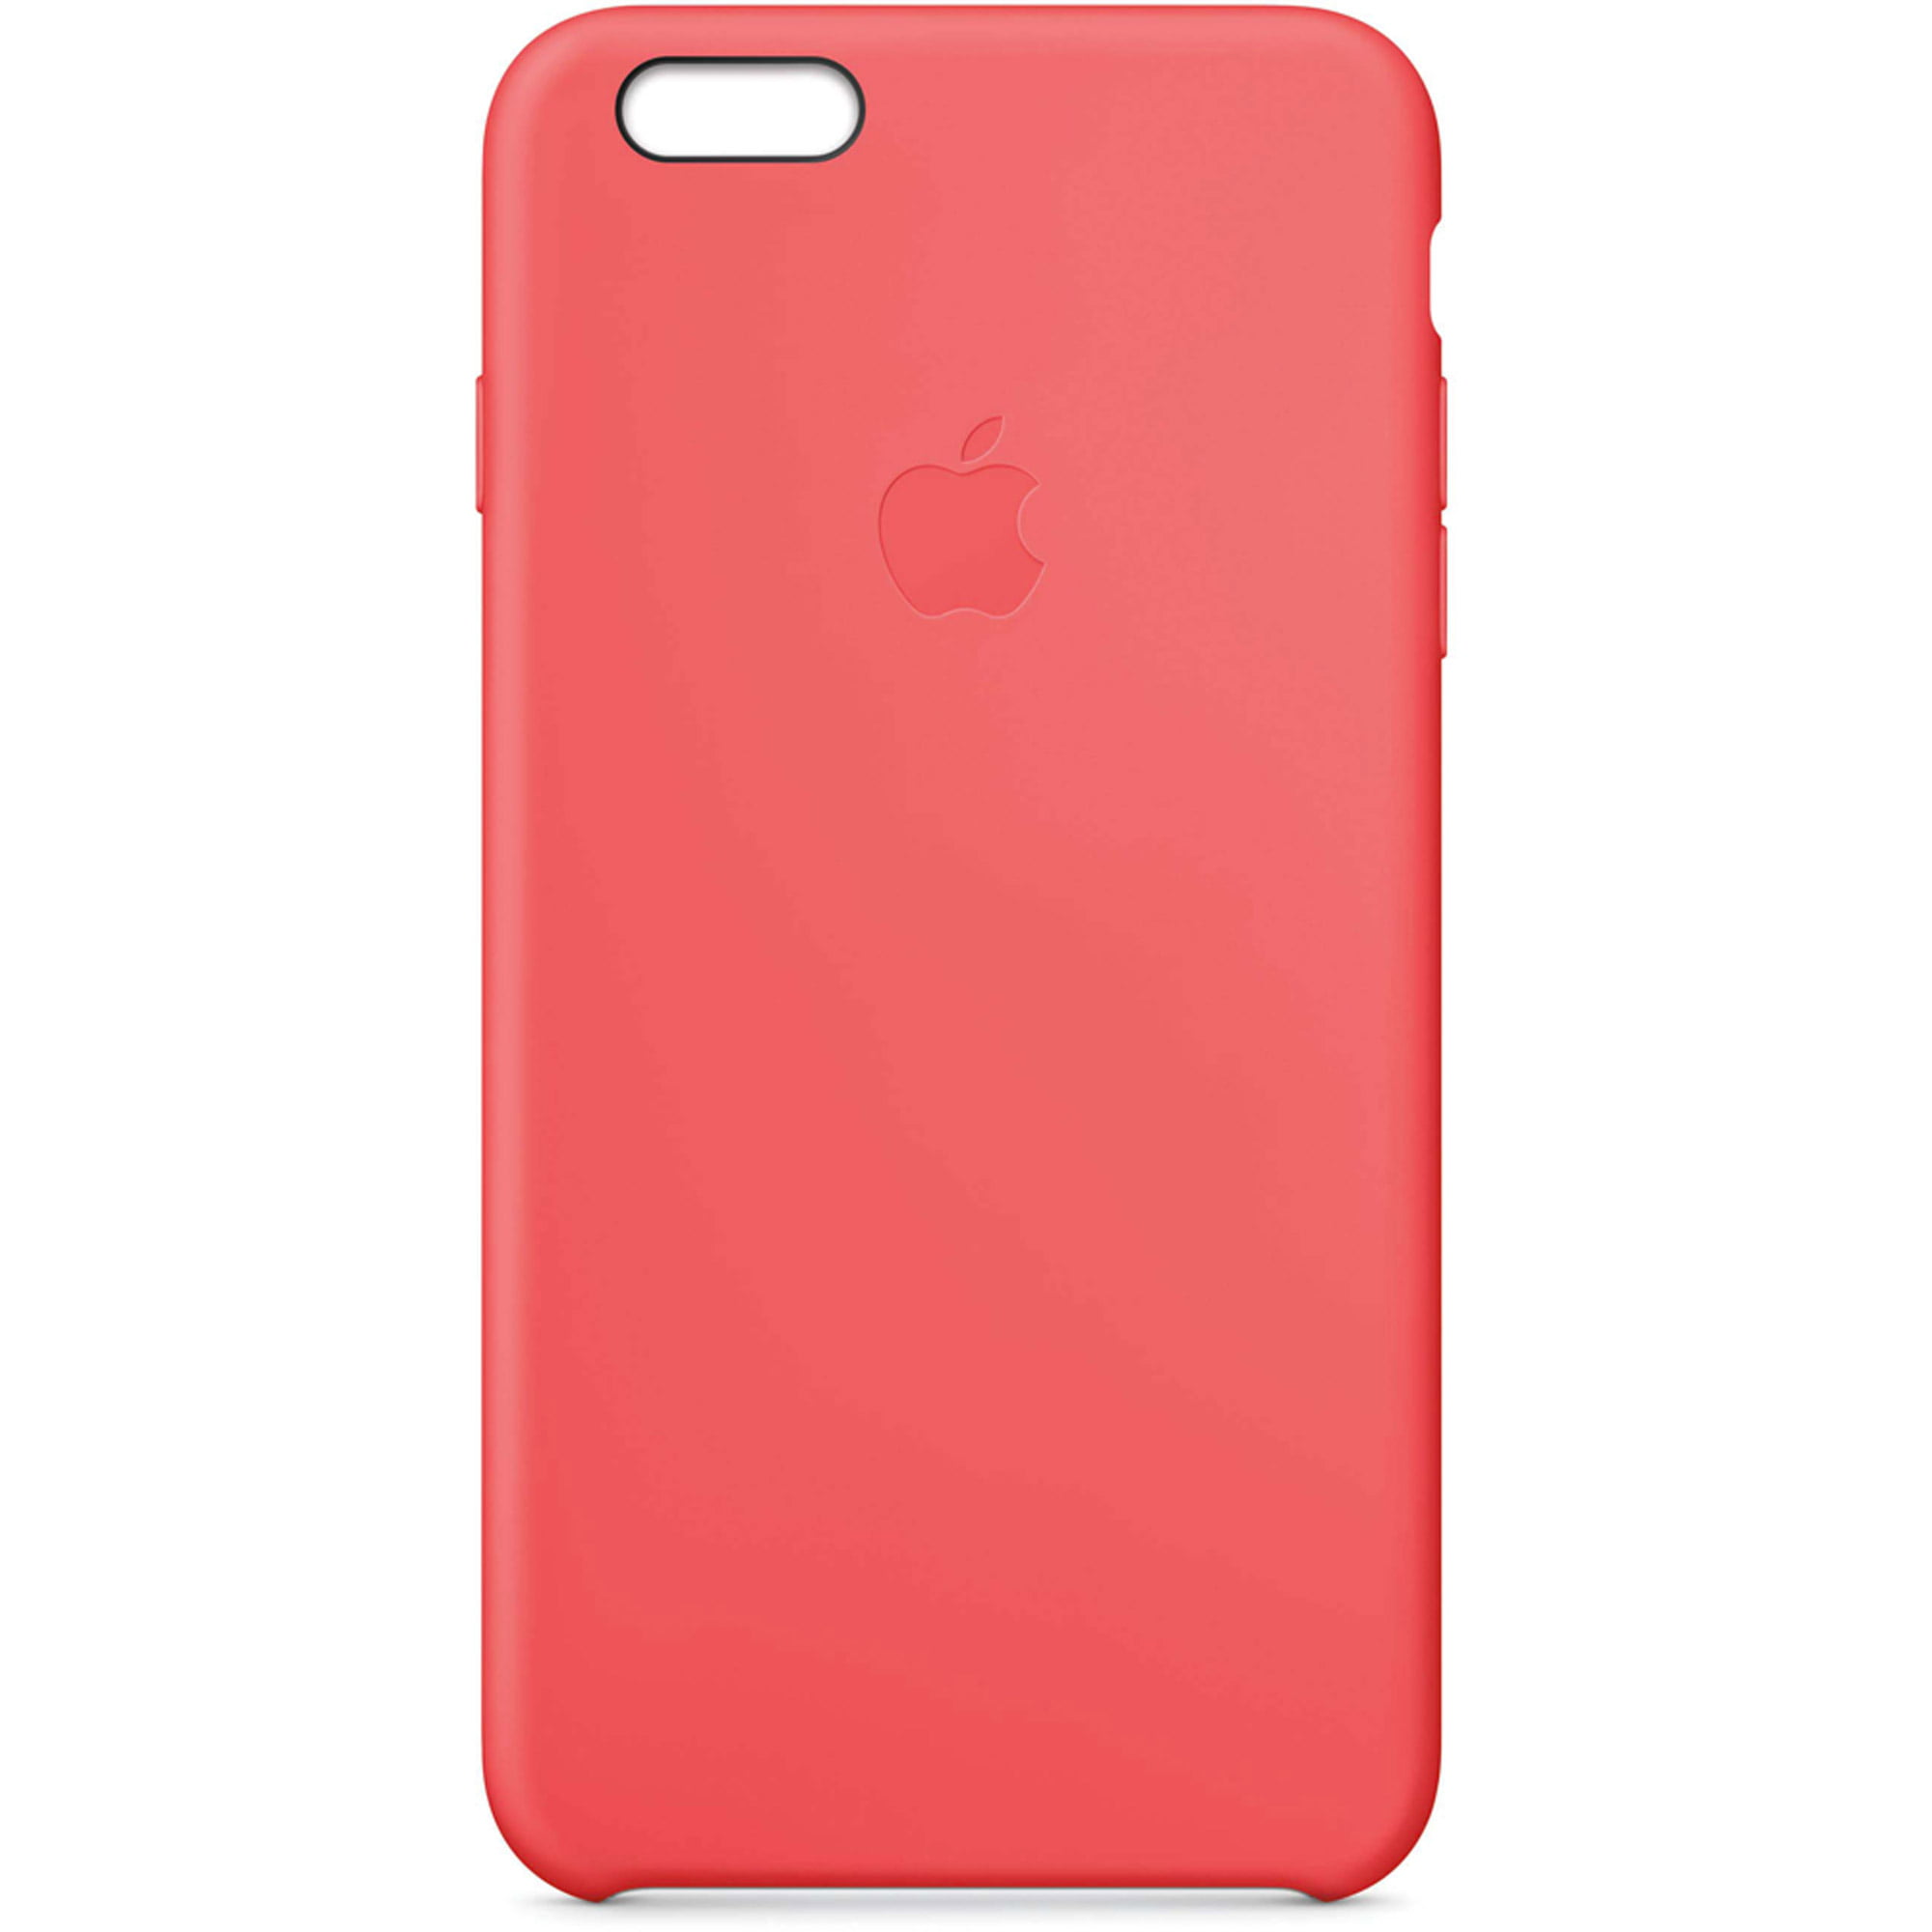 100% authentic e0ee3 91343 Apple Silicone Case for iPhone 6s Plus and iPhone 6 Plus - Pink